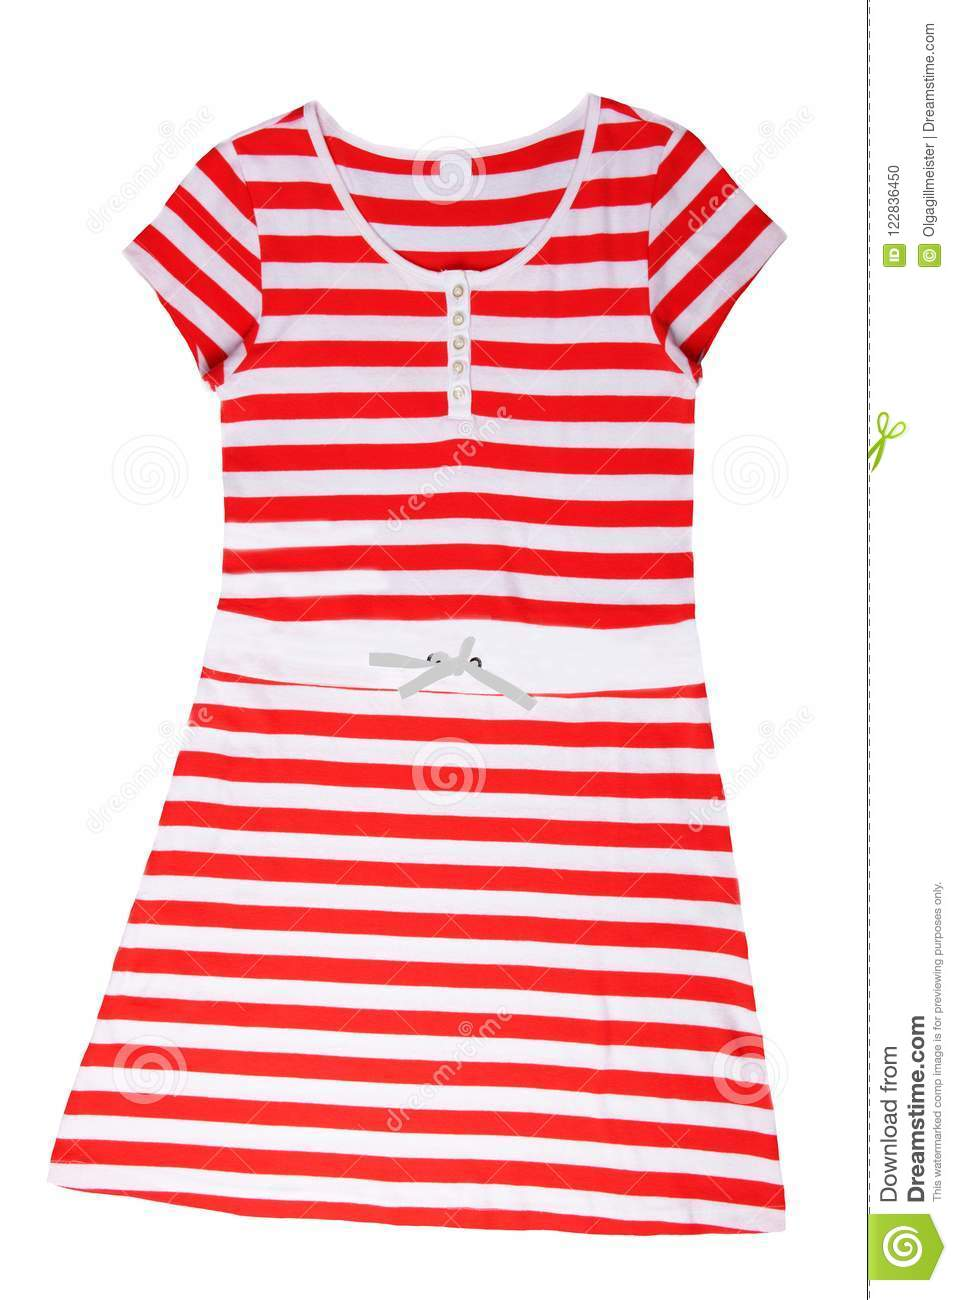 Fashionable summer clothes isolated on a white background. Red w